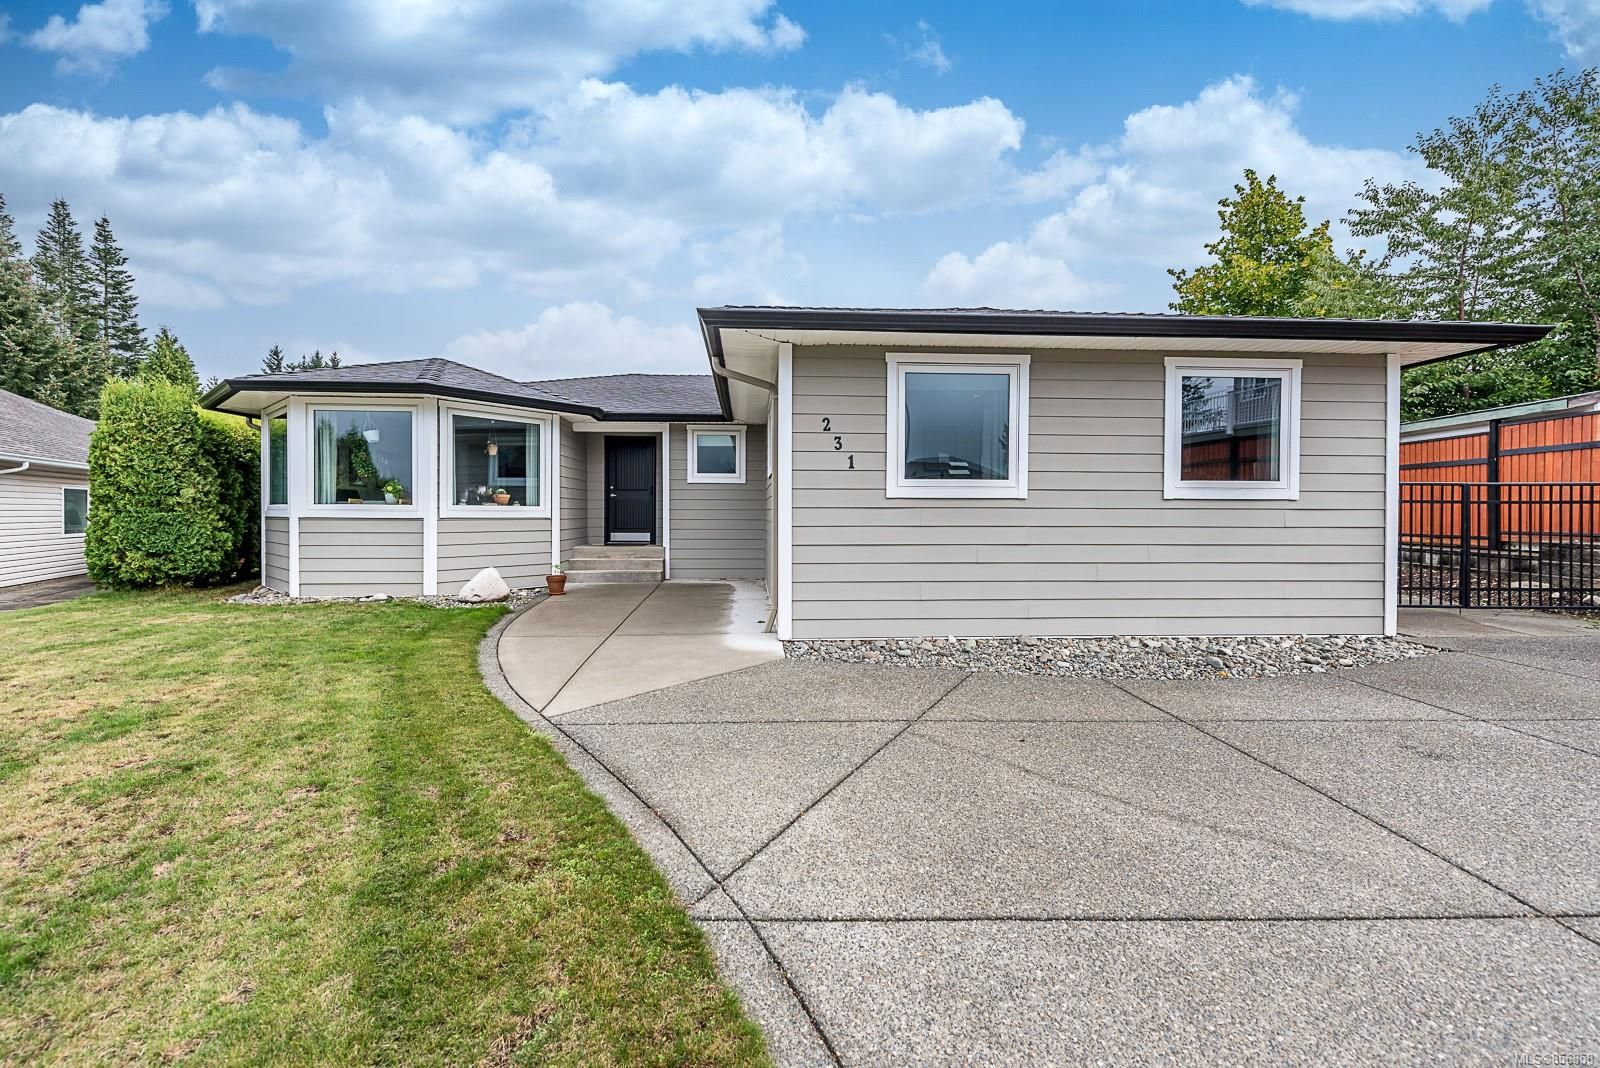 Main Photo: 231 Carmanah Dr in Courtenay: CV Courtenay East House for sale (Comox Valley)  : MLS®# 856358